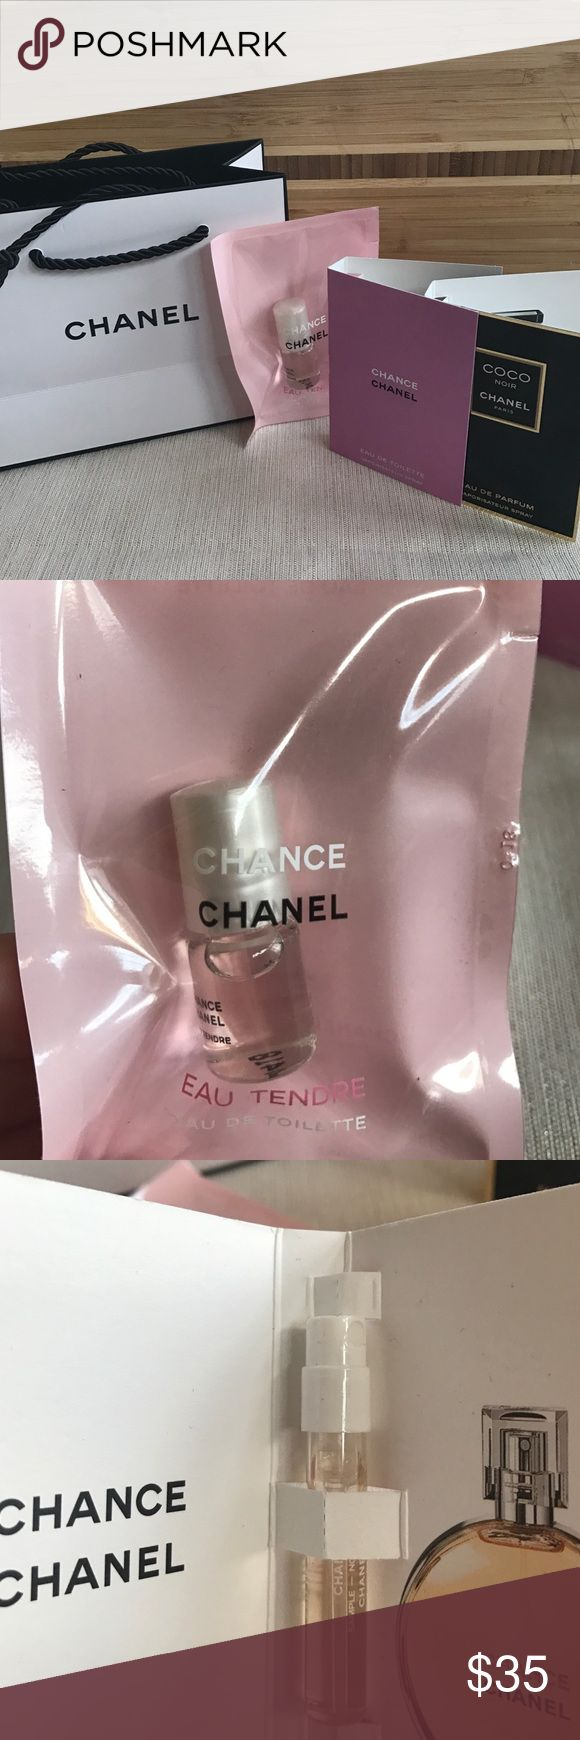 Chanel travel kit Travel size Chanel Chance Eau Tendre in travel size roller ball, sample of Chanel Chance, sample of COCO NOIR, complete with iconic Chanel bag with Chanel tissue paper. So feminine! Perfect stocking stuffer or gift for yourself 😍 CHANEL Other